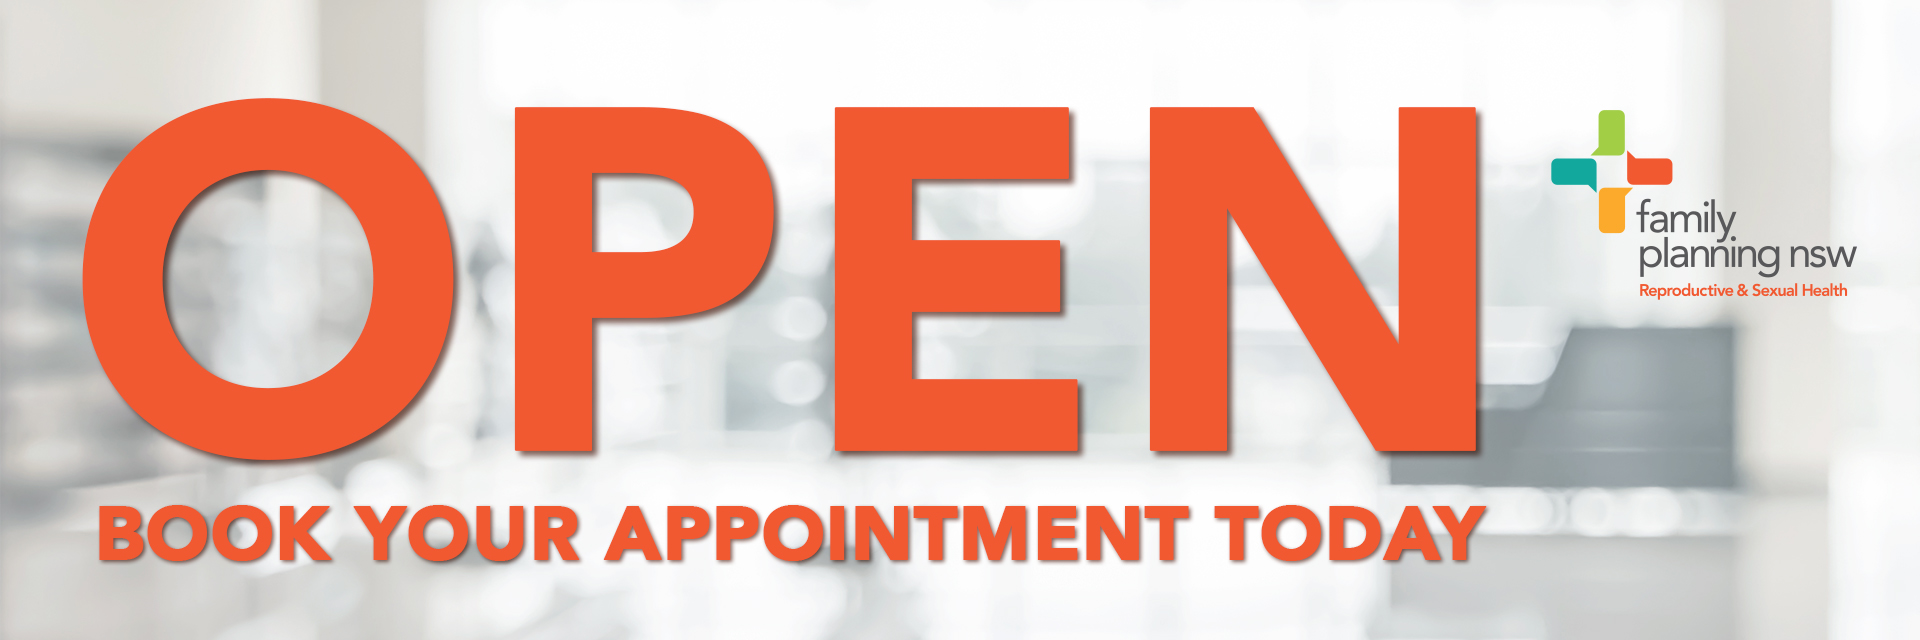 Family Planning NSW clinics are open